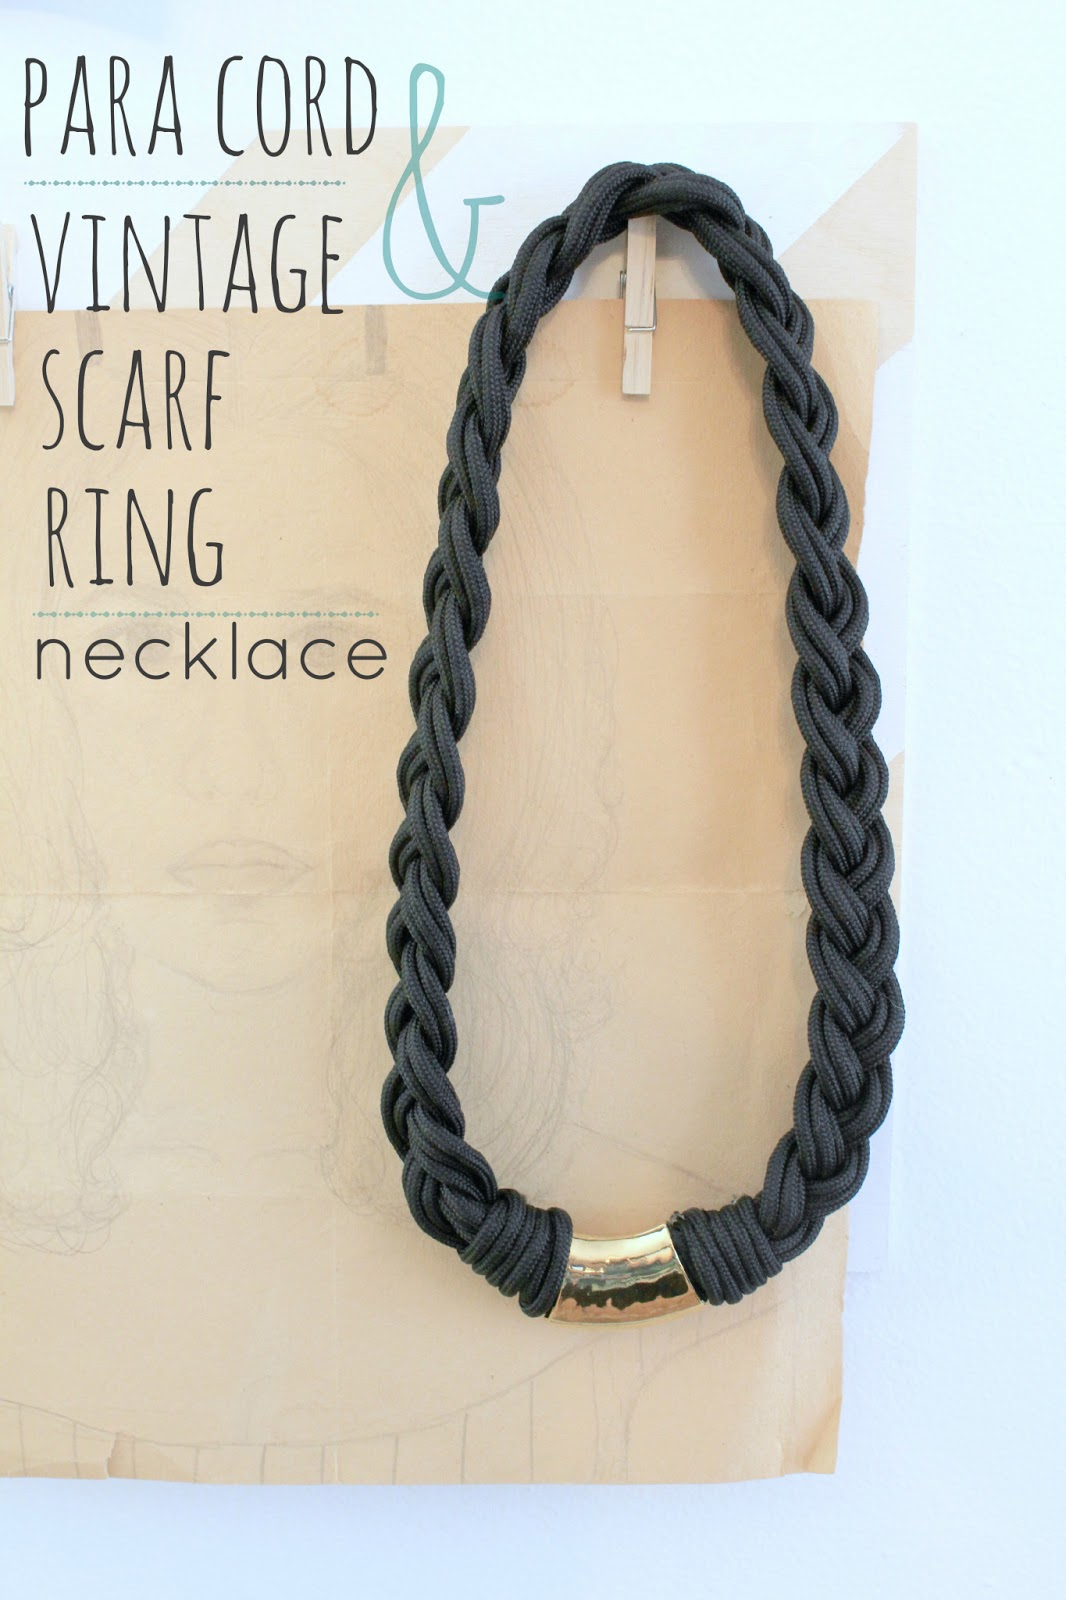 Paracord and Vintage Scarf Ring Necklace